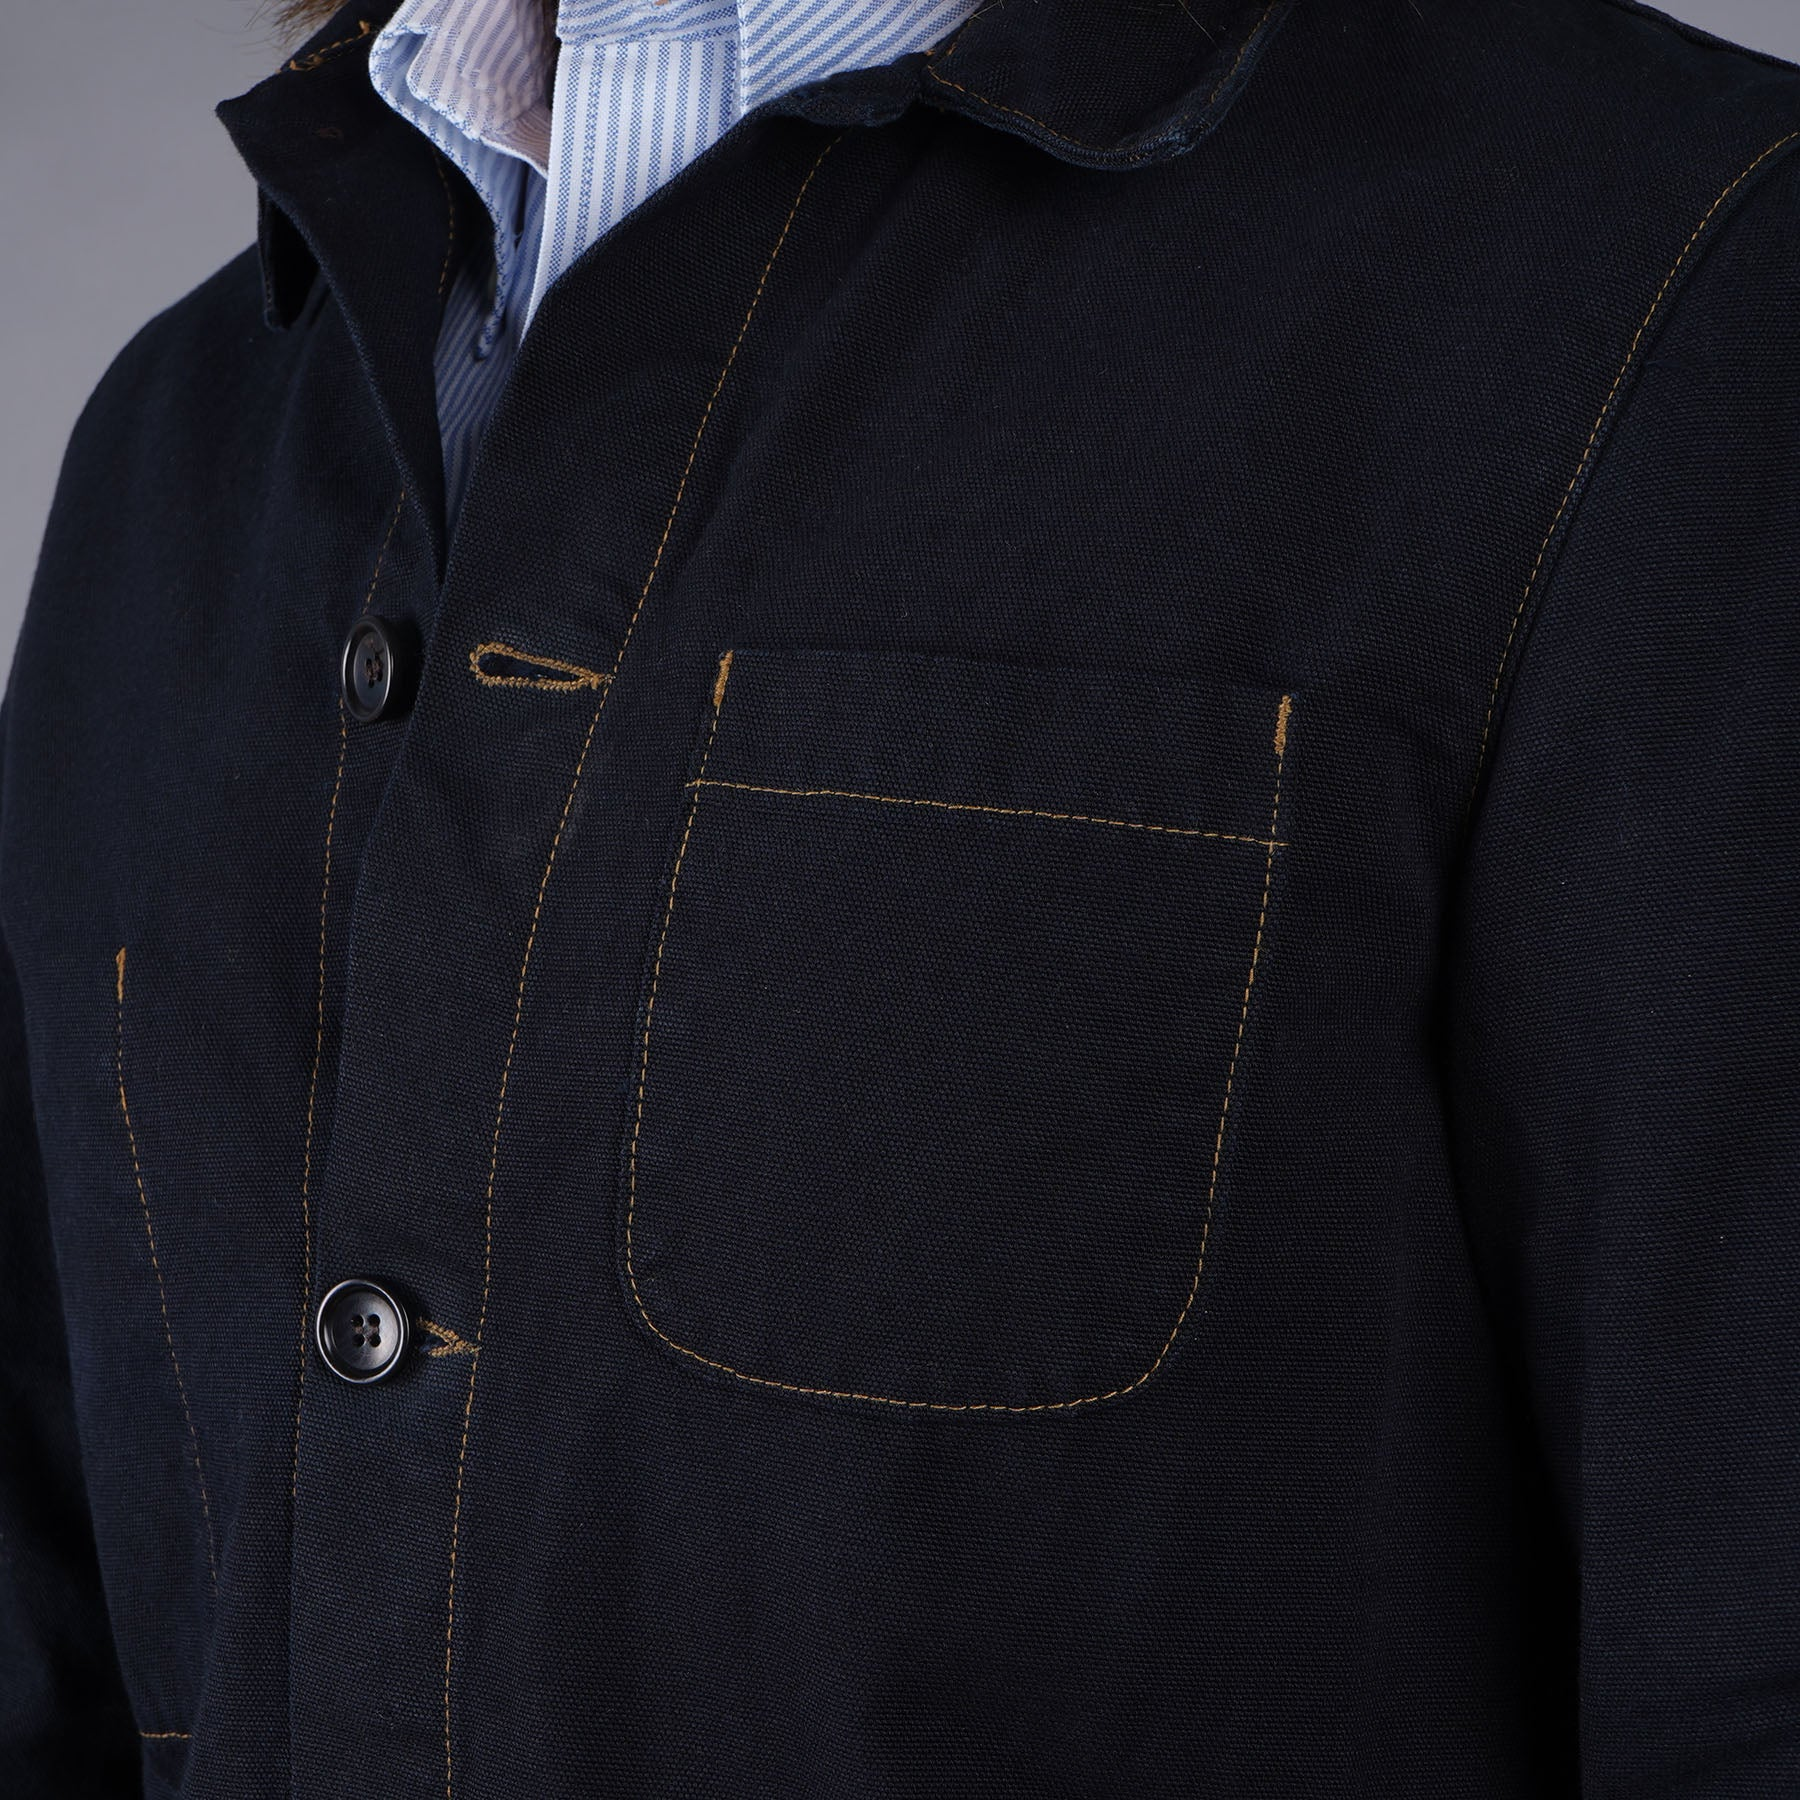 a767eb7a22 Doyle Jacket 12oz Indigo-Dipped Duck Canvas - Epaulet New York